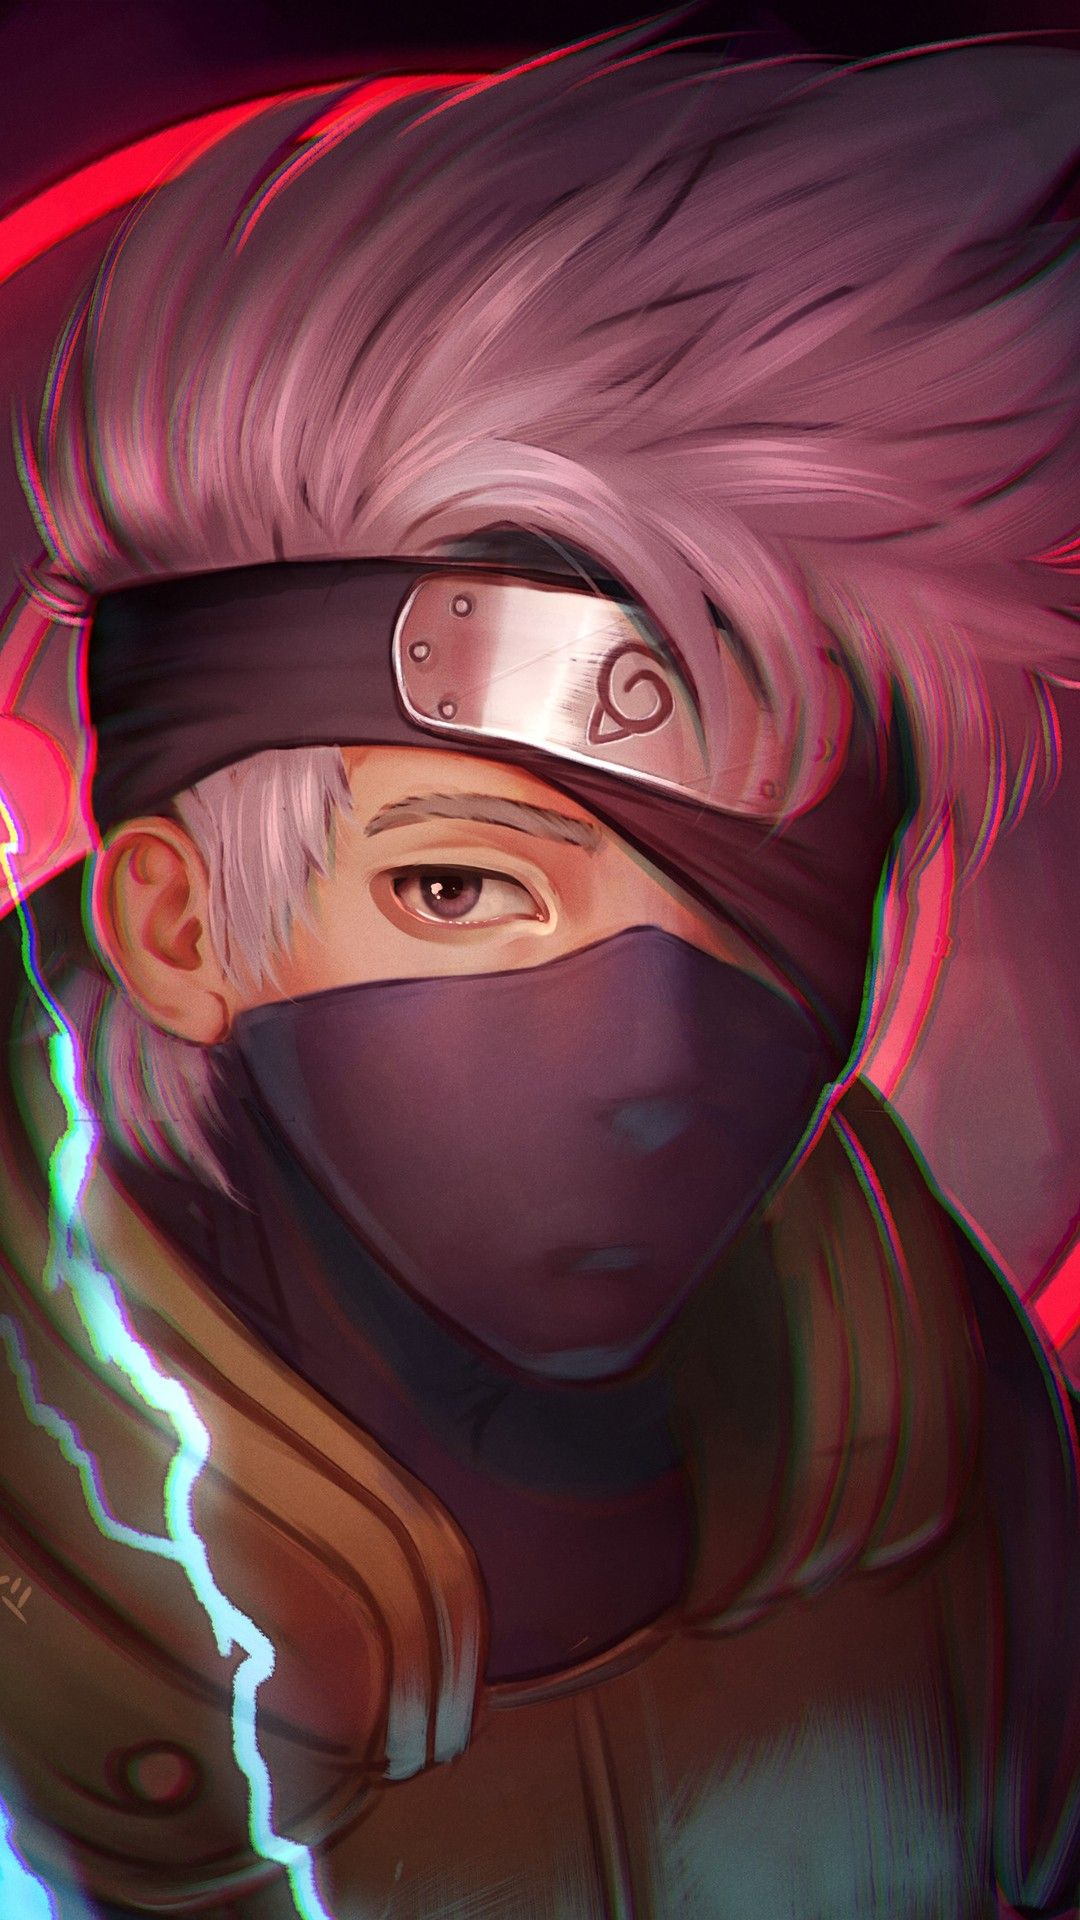 Pin By Master On My Ninja Way In 2020 Naruto Wallpaper Anime Character Drawing Anime